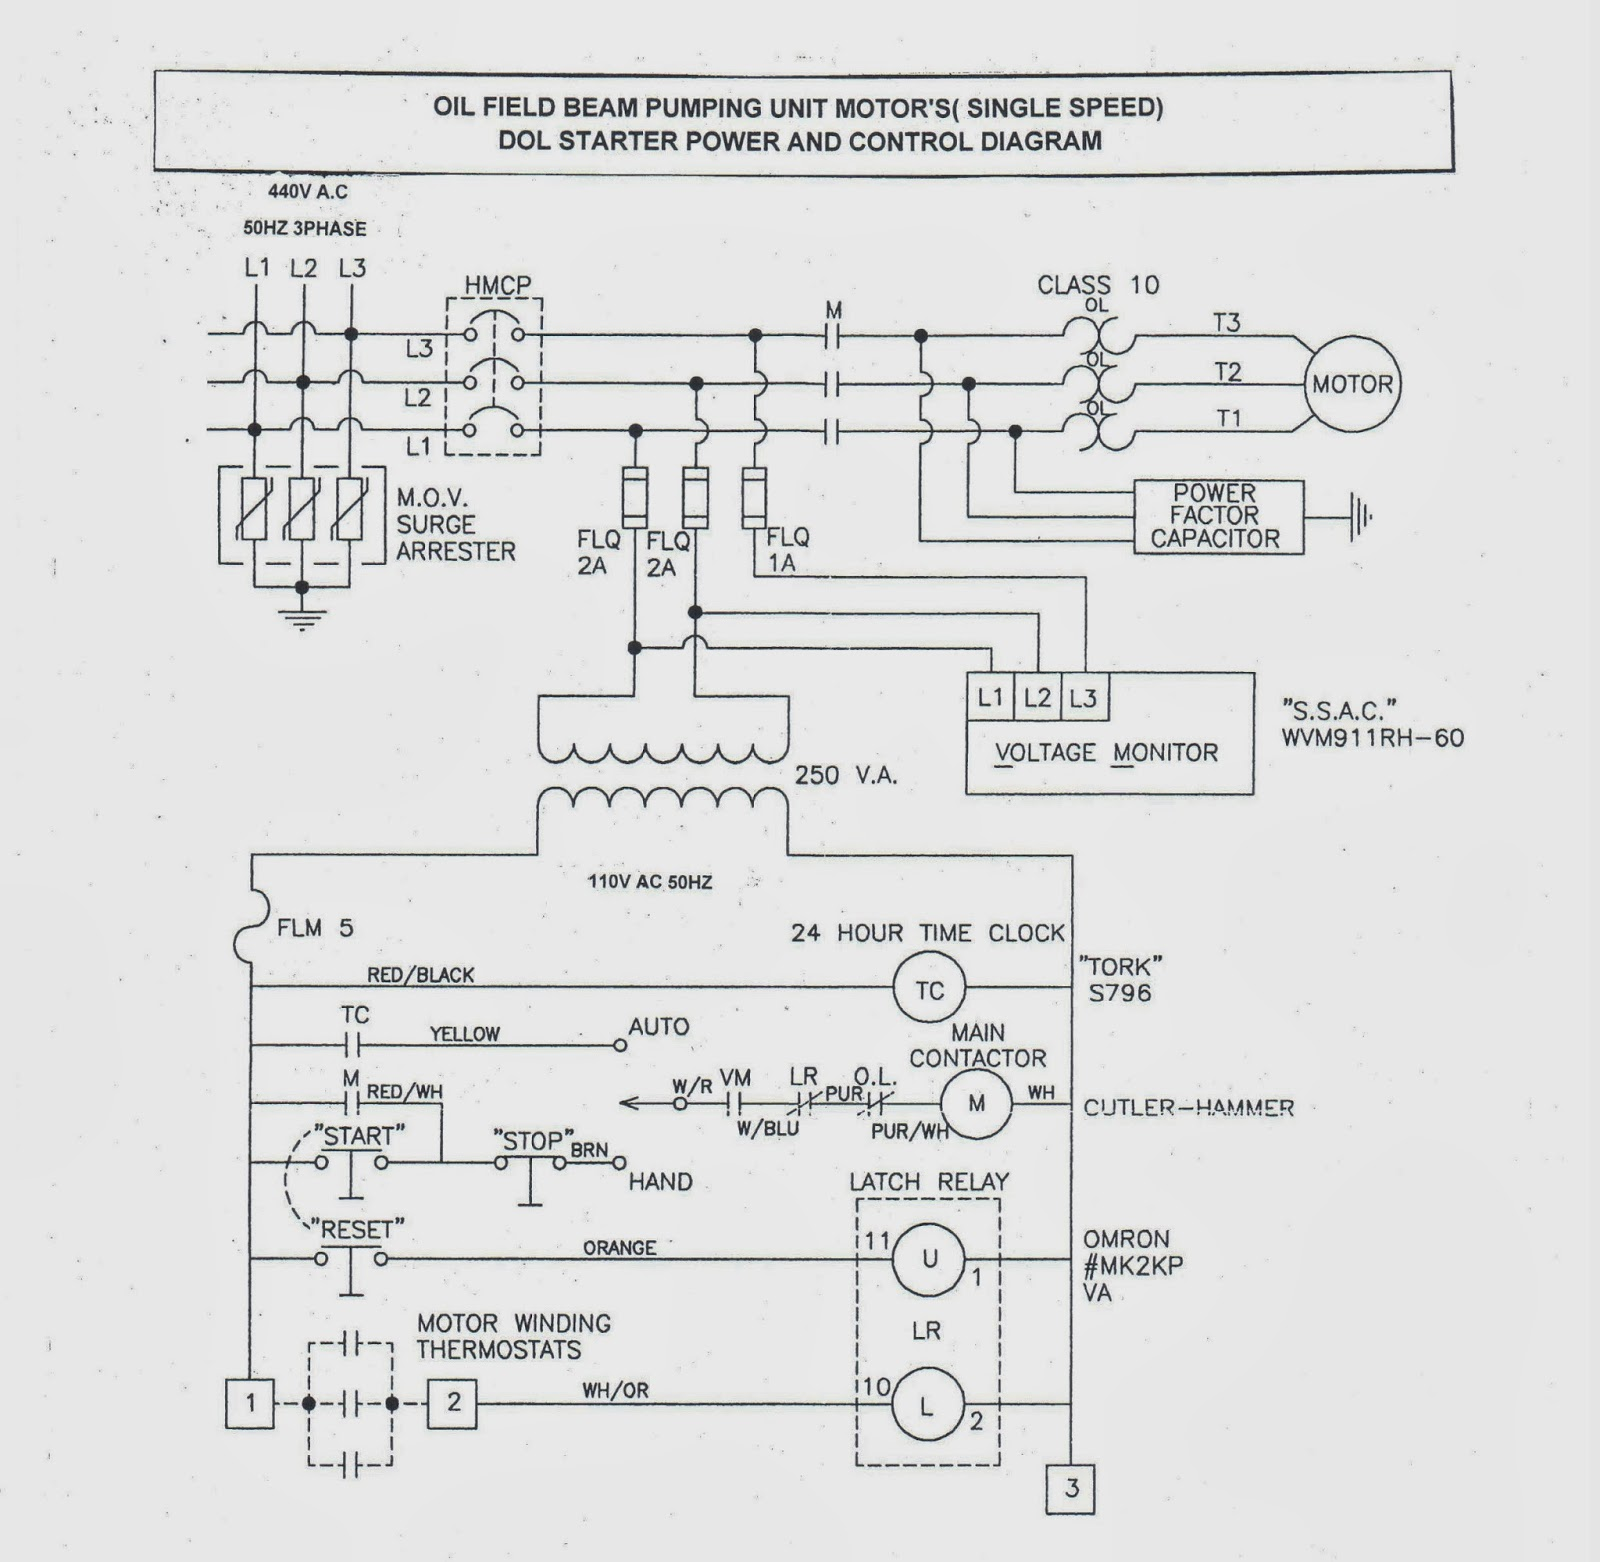 hight resolution of oil field beam pumping unit motor dol starter power and control diagram